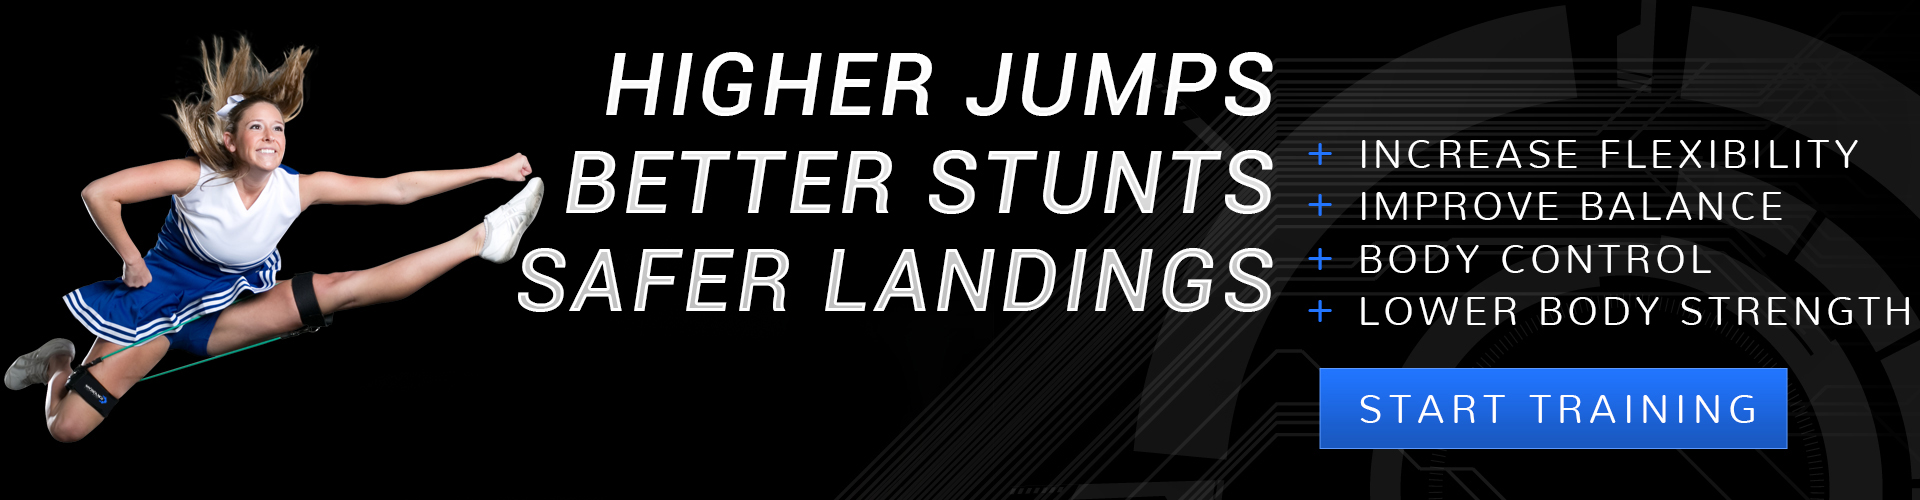 Get higher jumps, better stunts, and safer landings when you use Cheer Kinetic Bands in your cheerleading training program; Improve cheer fitness, flexibility, balance, body control, lower body strength.